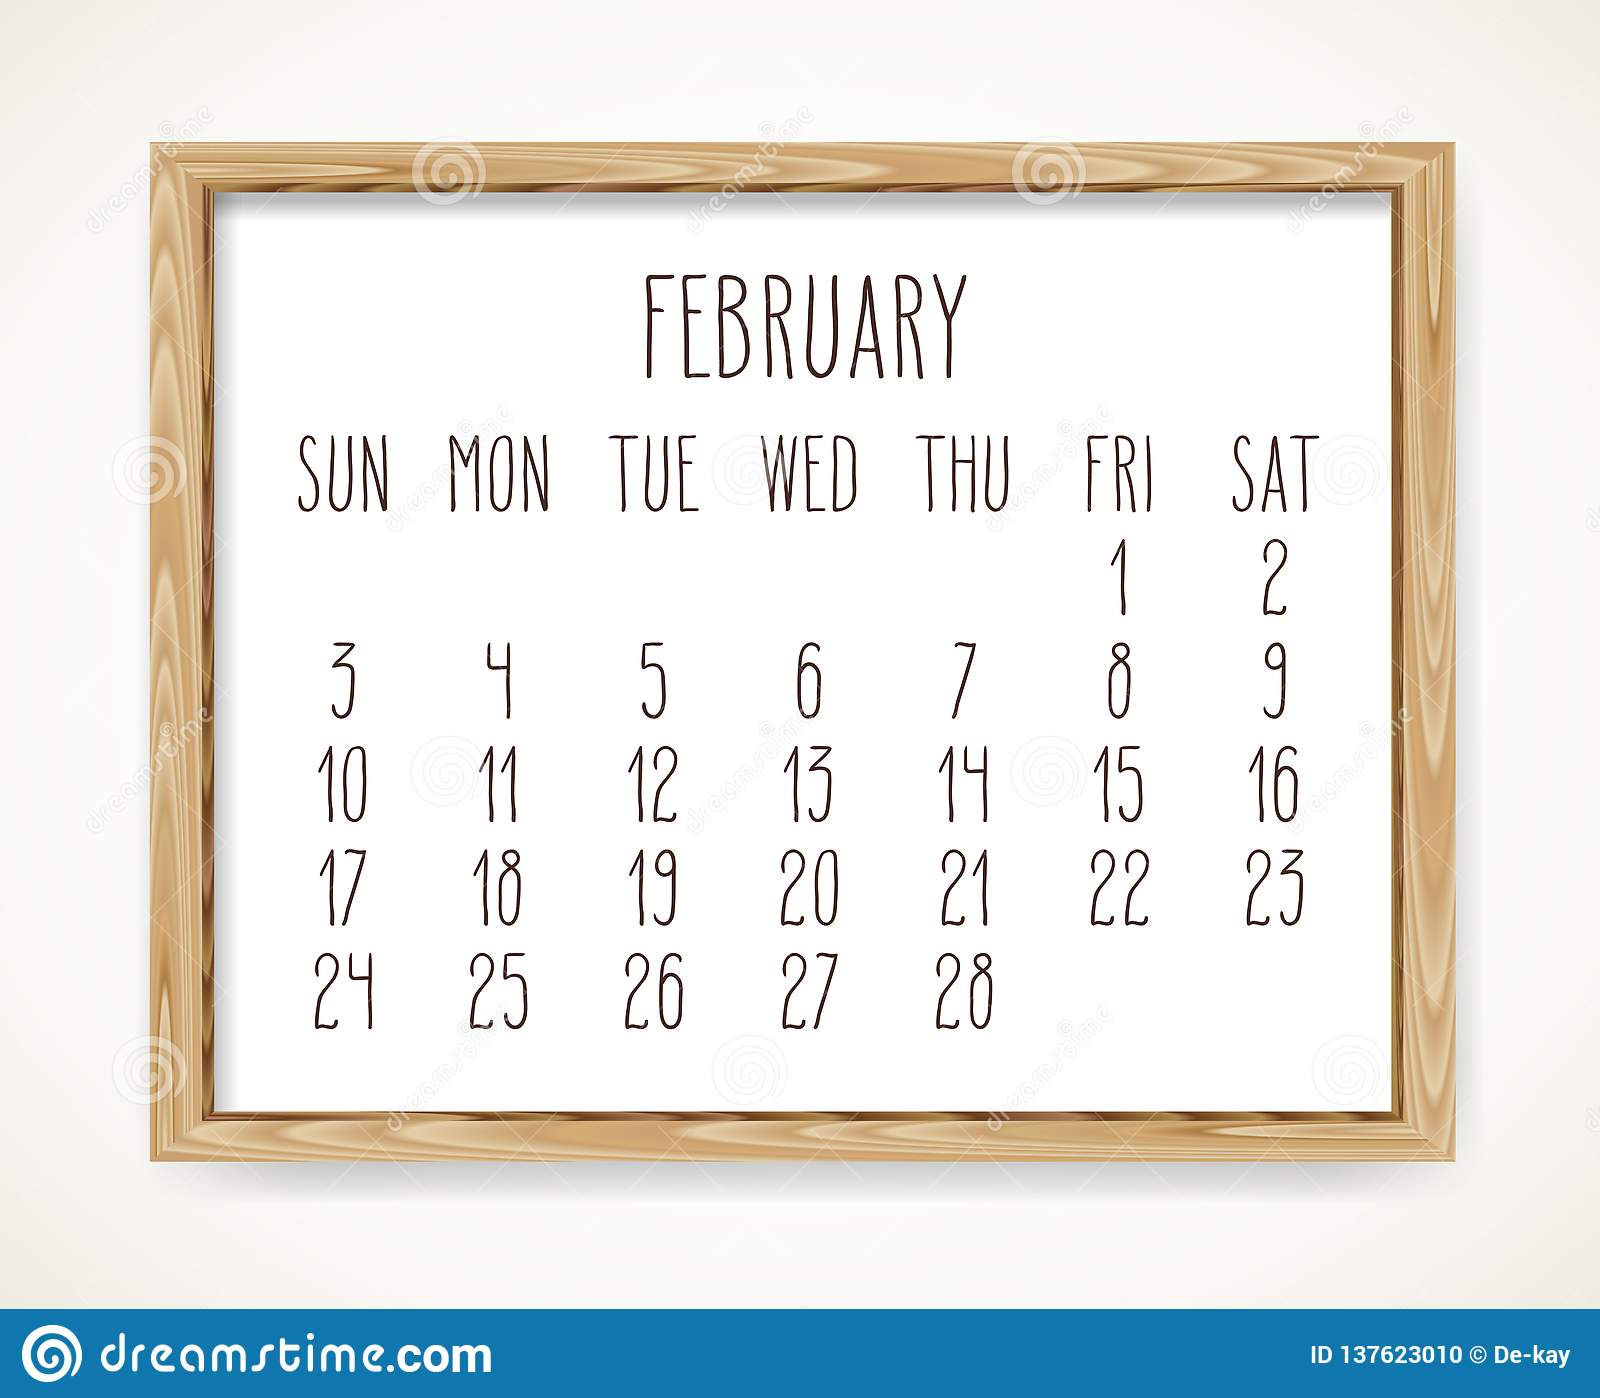 Monthly Calendar Grid February 2019 February 2019 Monthly Calendar Stock Vector   Illustration of